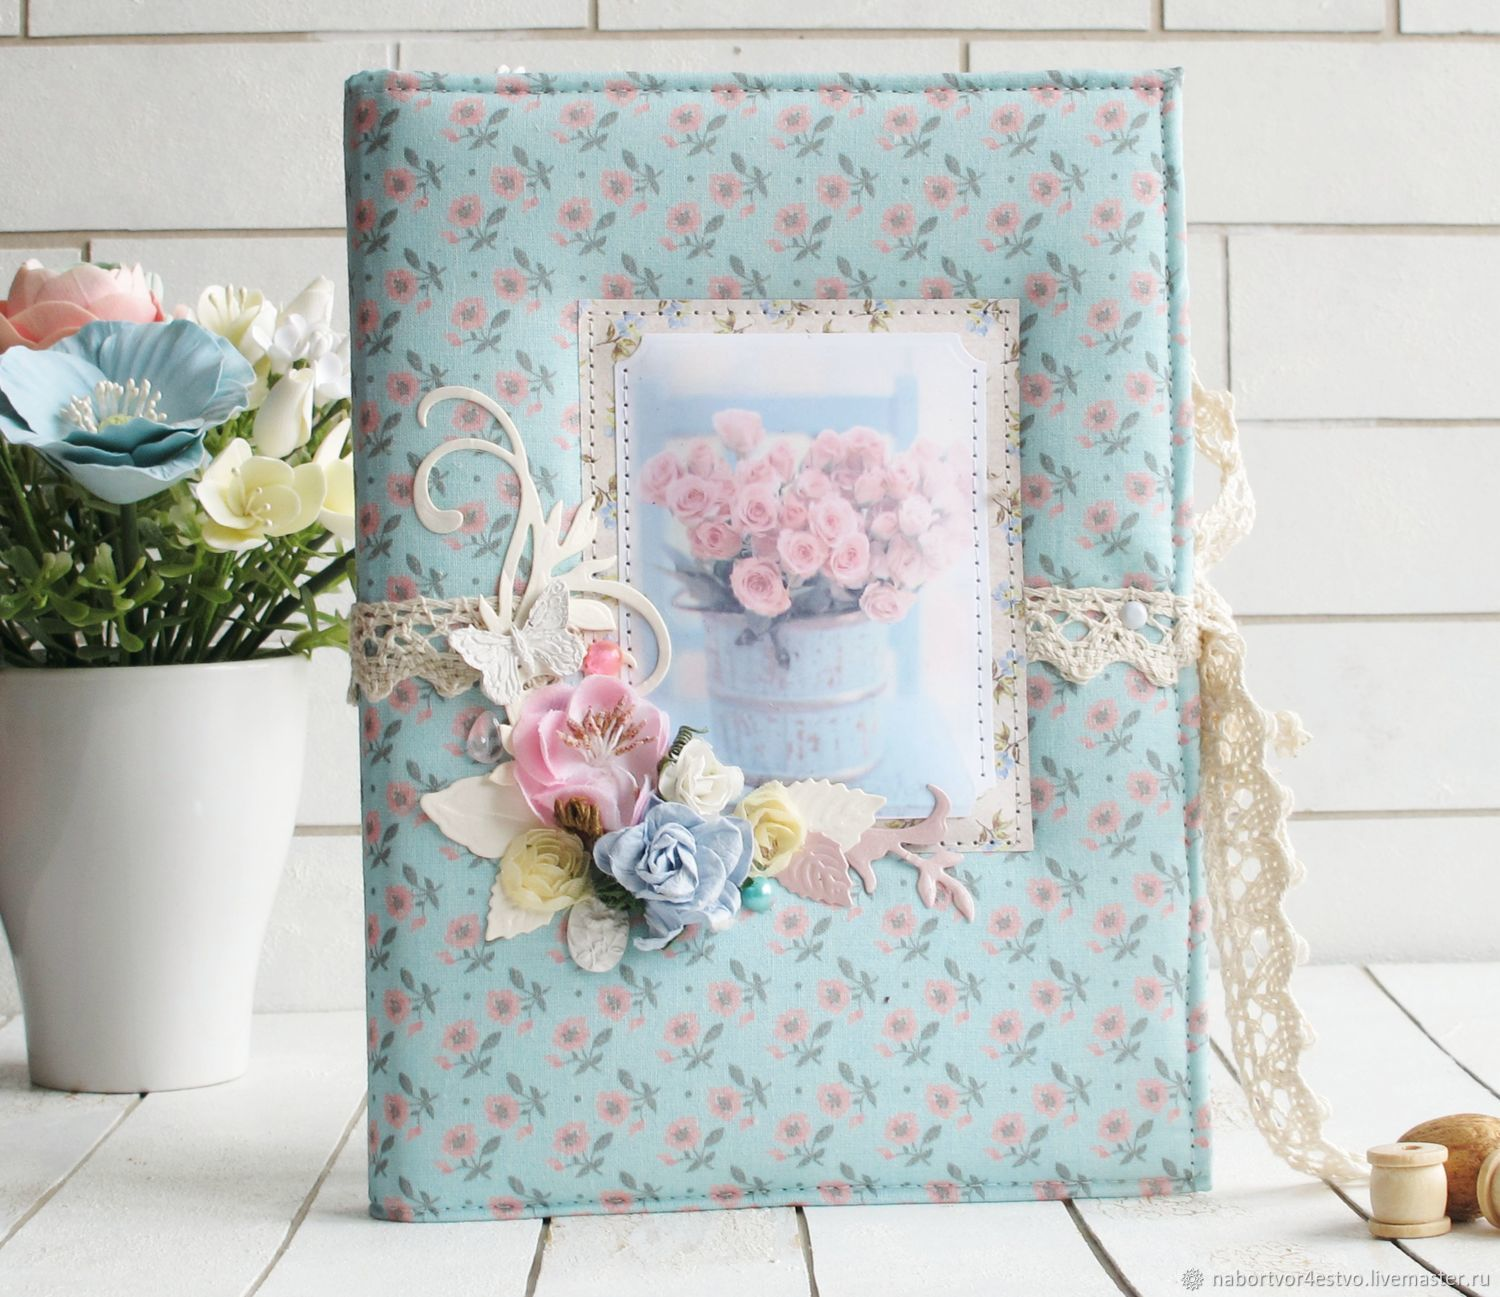 set to create a Notepad scrapbook how to make a notebook with his own hands out of paper how to make a Notepad, Notepad master Notepad scrapbooking master class in how to do Notepad